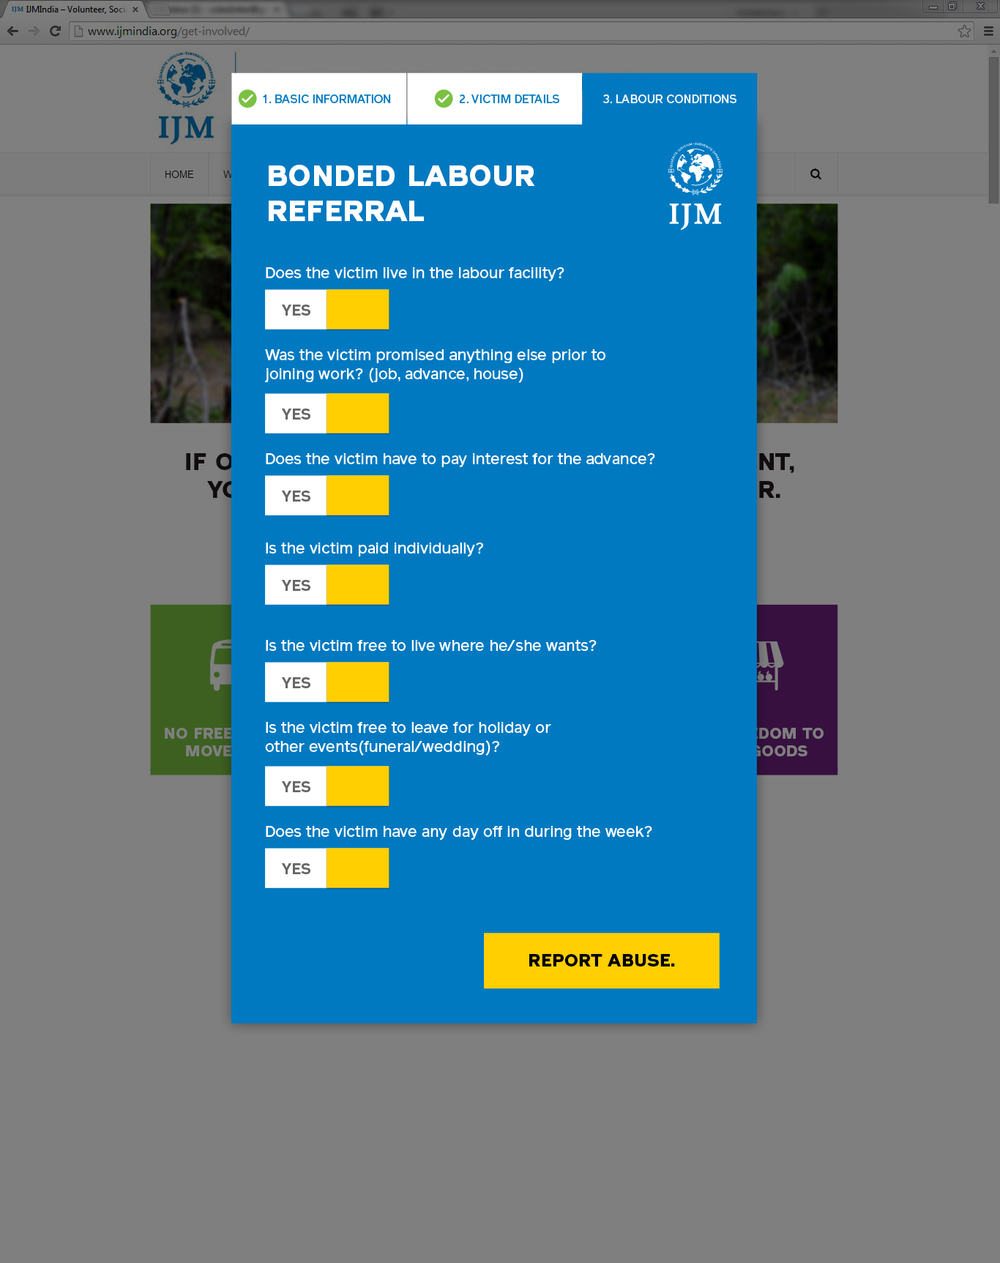 IJM-Referral-Site-Mock-Up_0011_Referral Form_ Labour Conditions.jpg